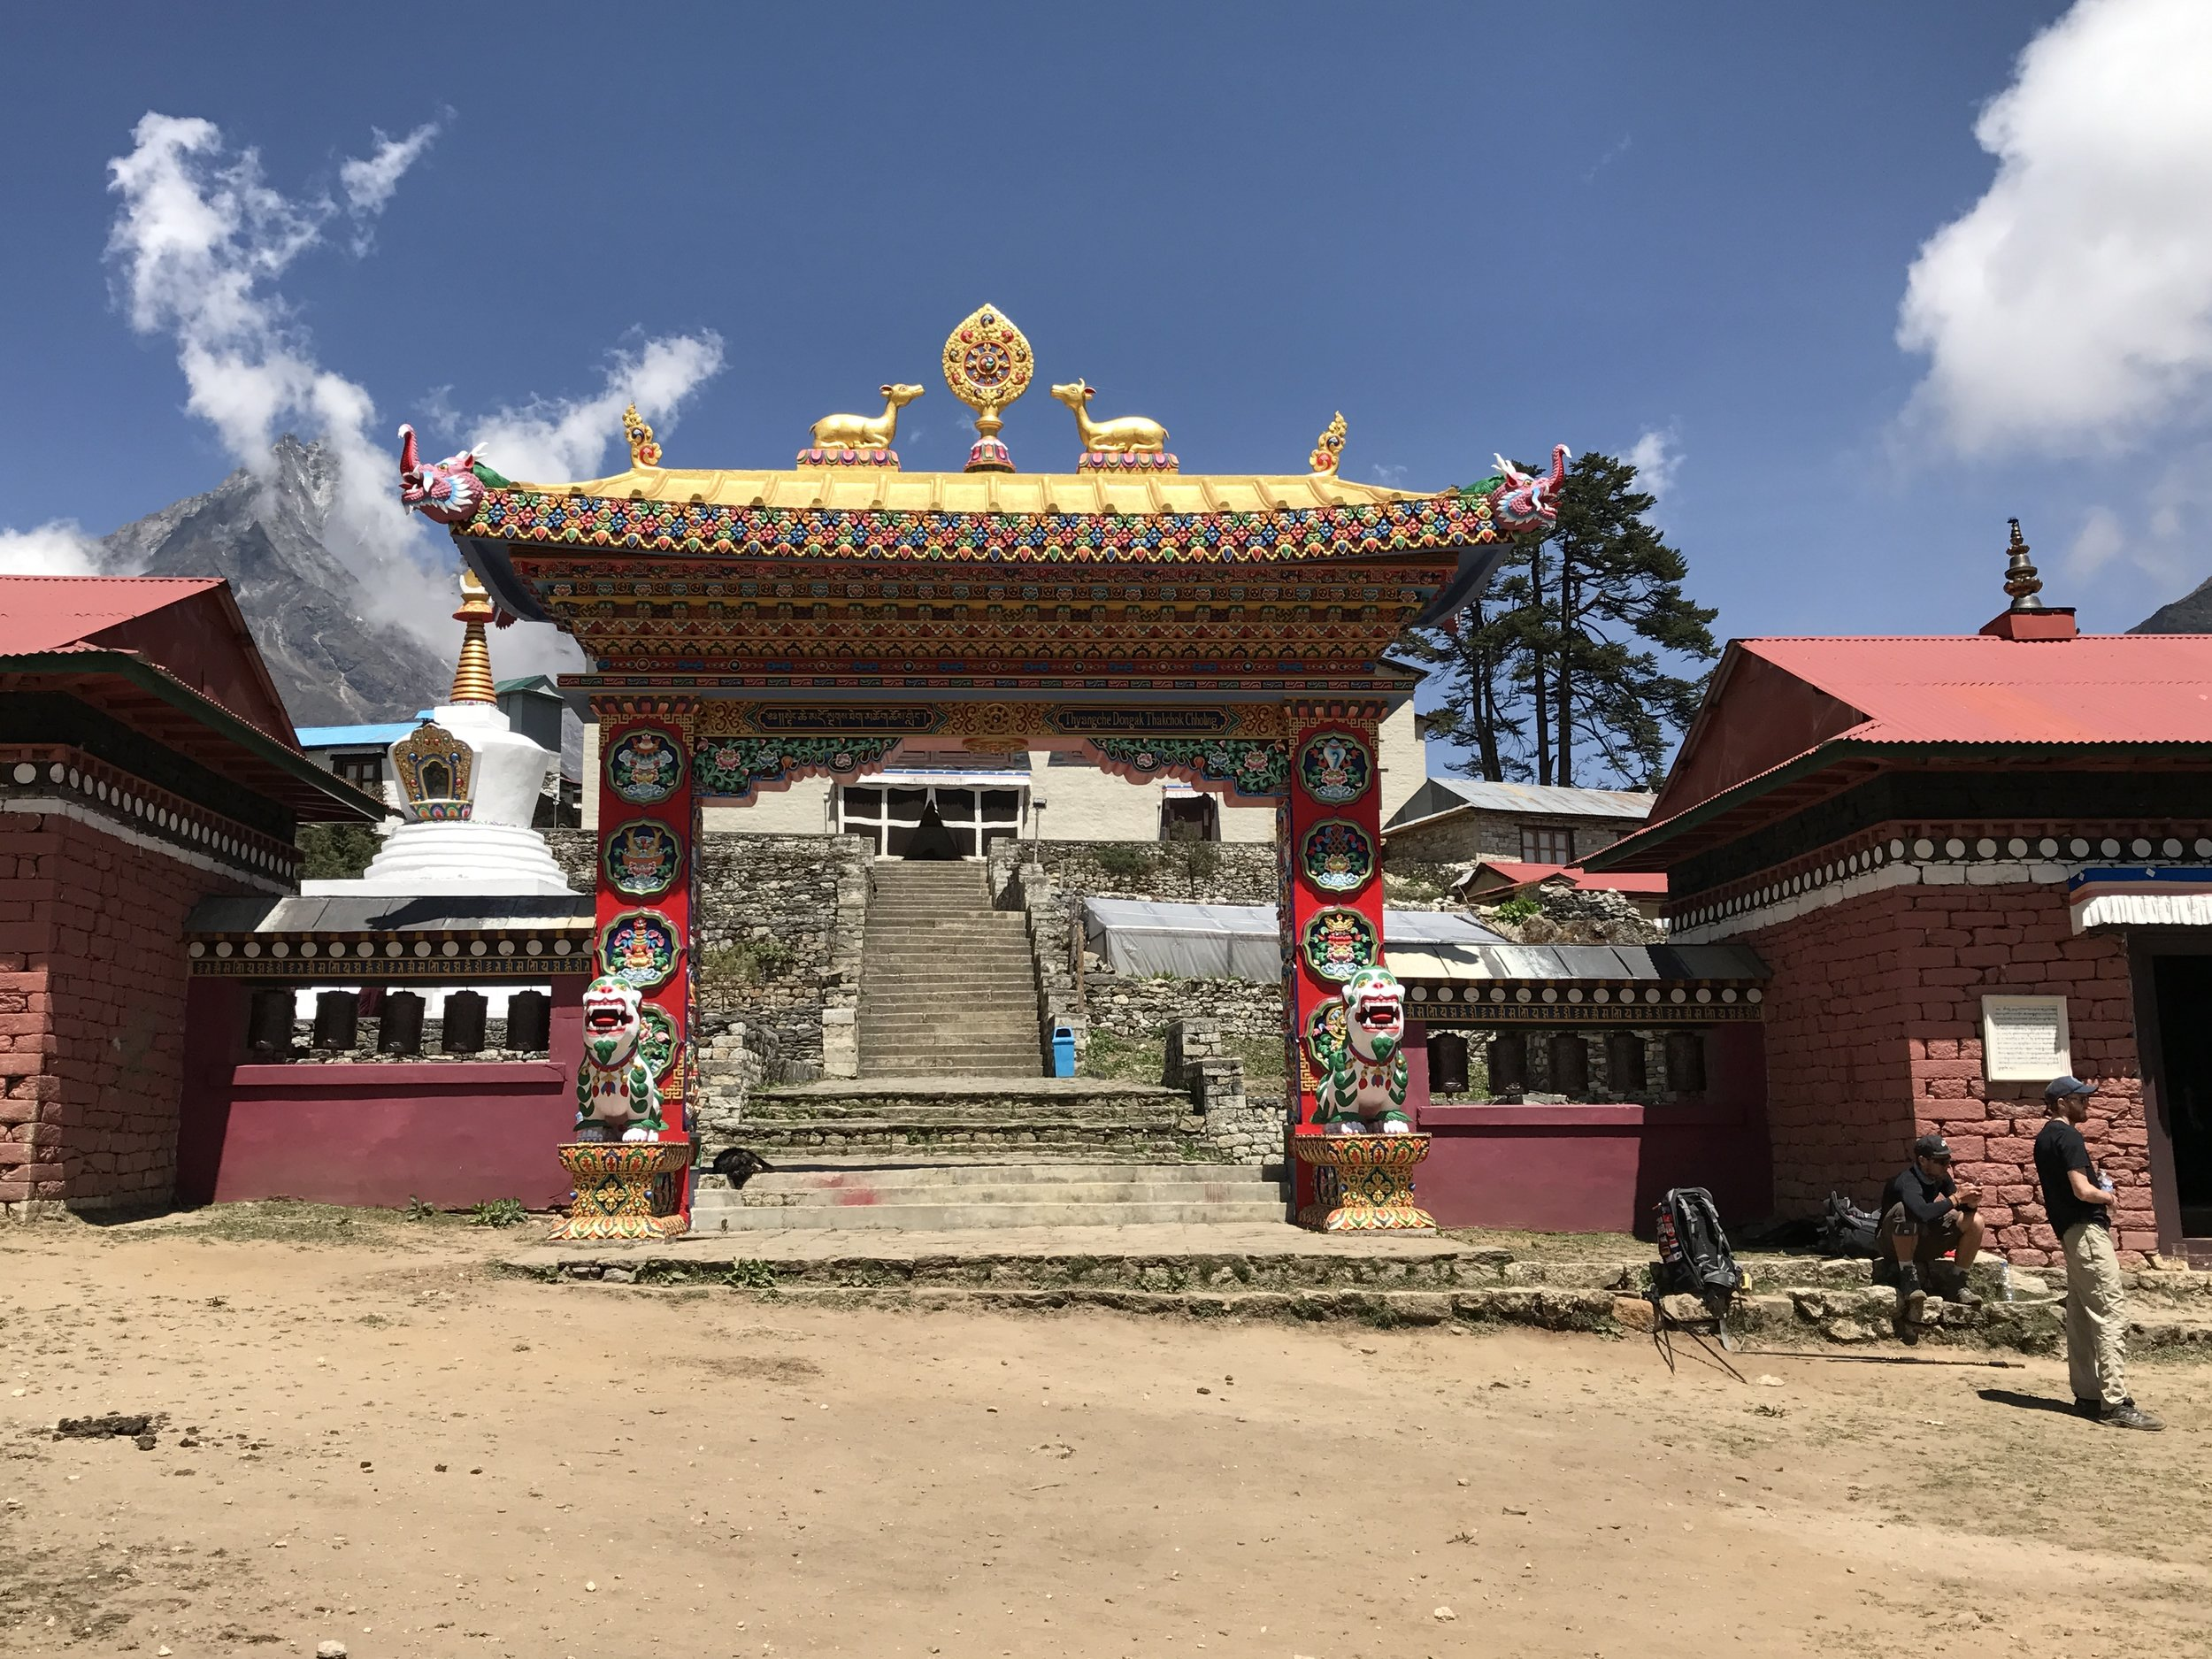 Dawa Choling Gompa, also known as tengboche monastery. you aren't permitted to take photos inside, so this is as close as you can get!